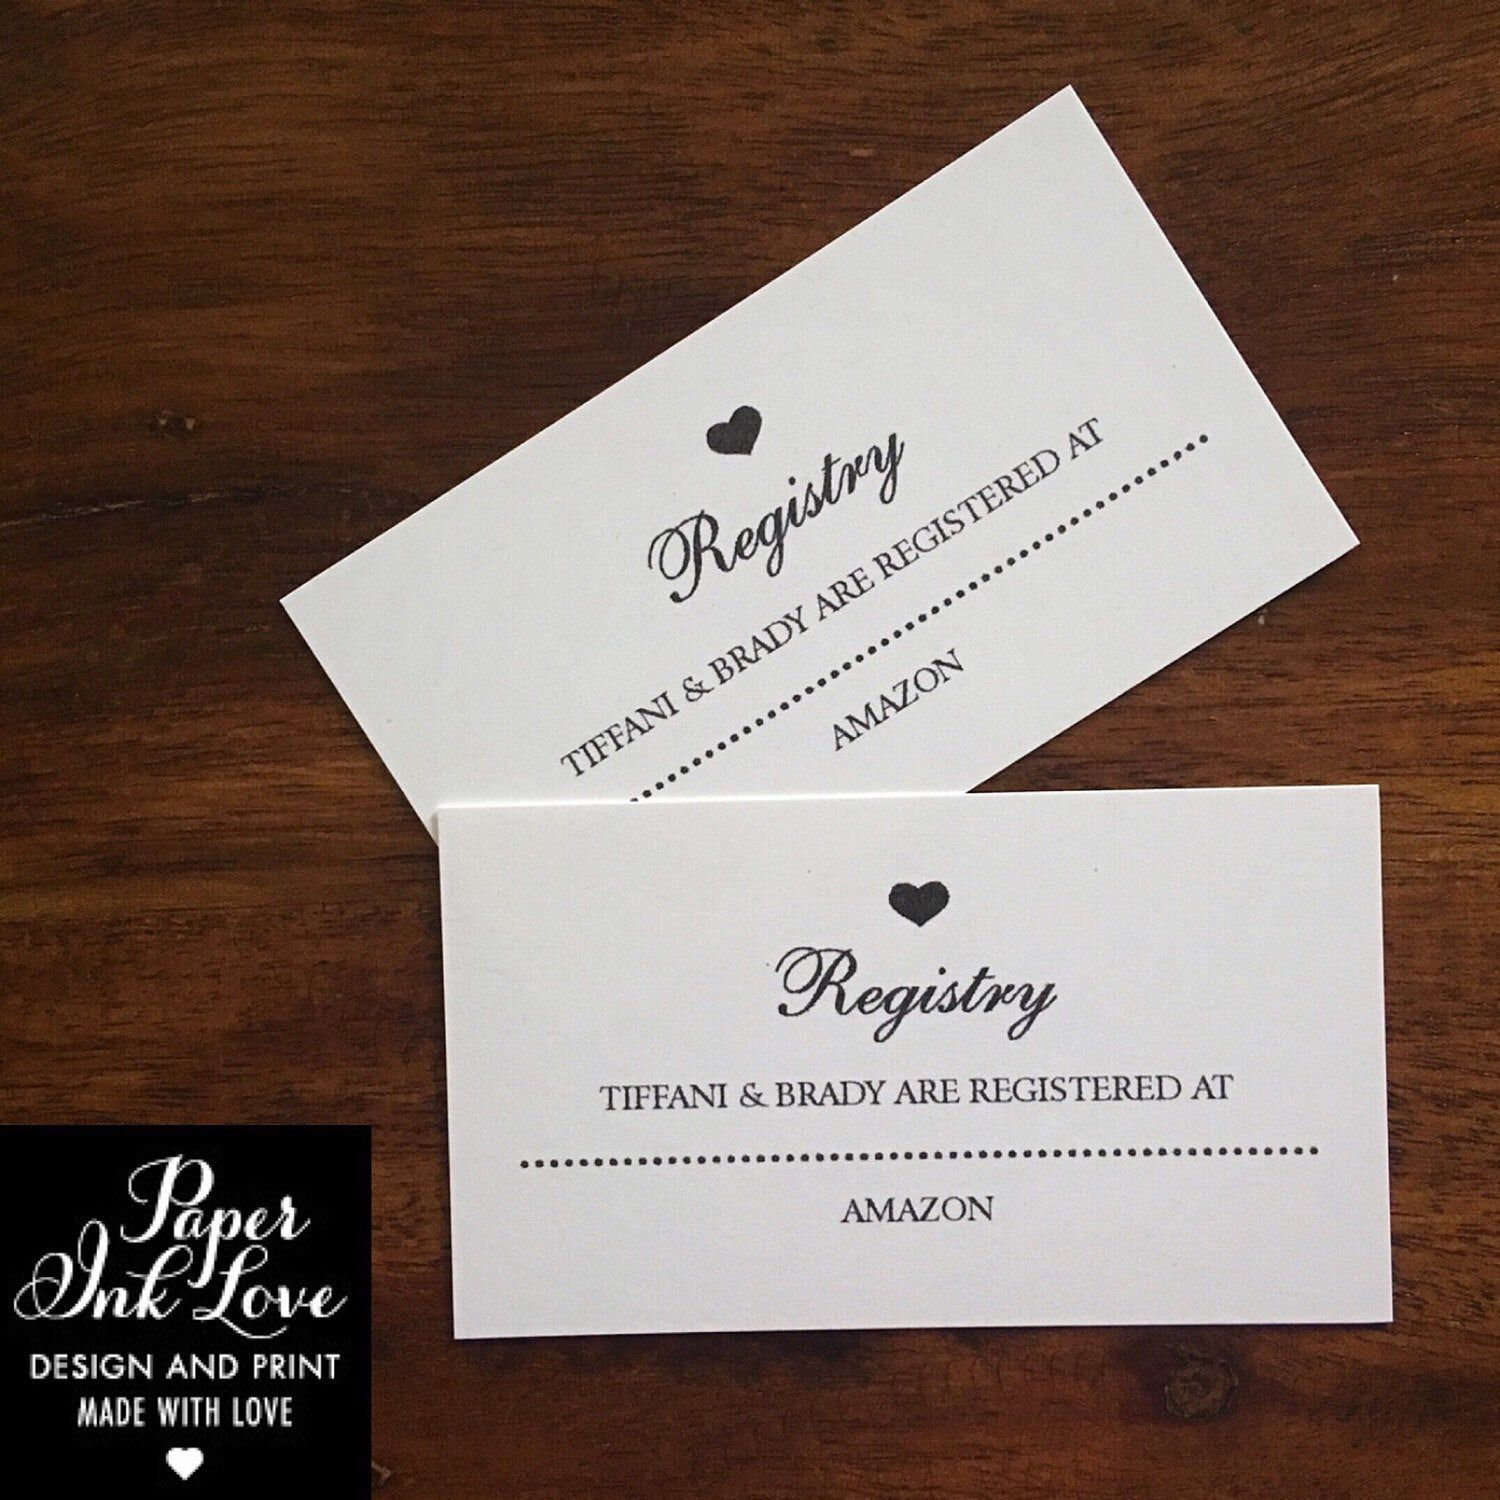 Wedding Website Enclosure Card / Invitation Inserts with